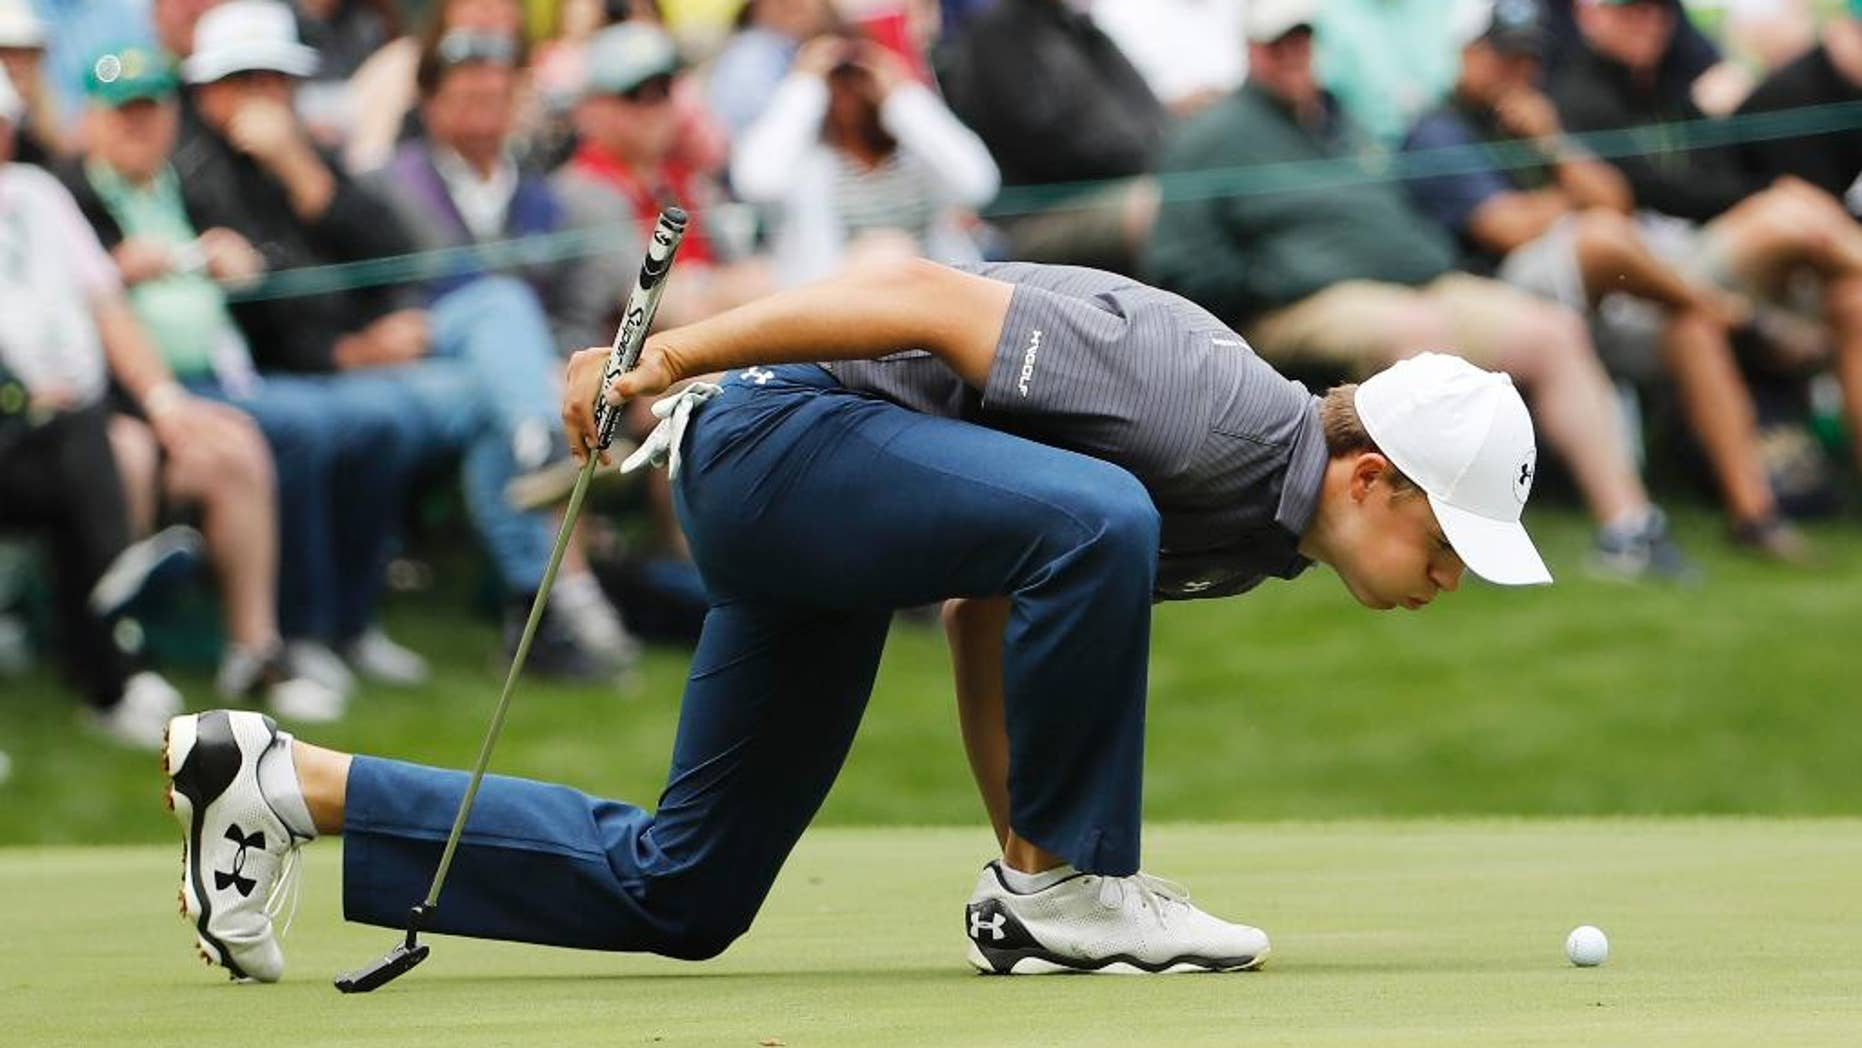 Jordan Spieth blows on his ball on the ninth hole during the par three competition at the Masters golf tournament Wednesday, April 6, 2016, in Augusta, Ga. (AP Photo/David J. Phillip)